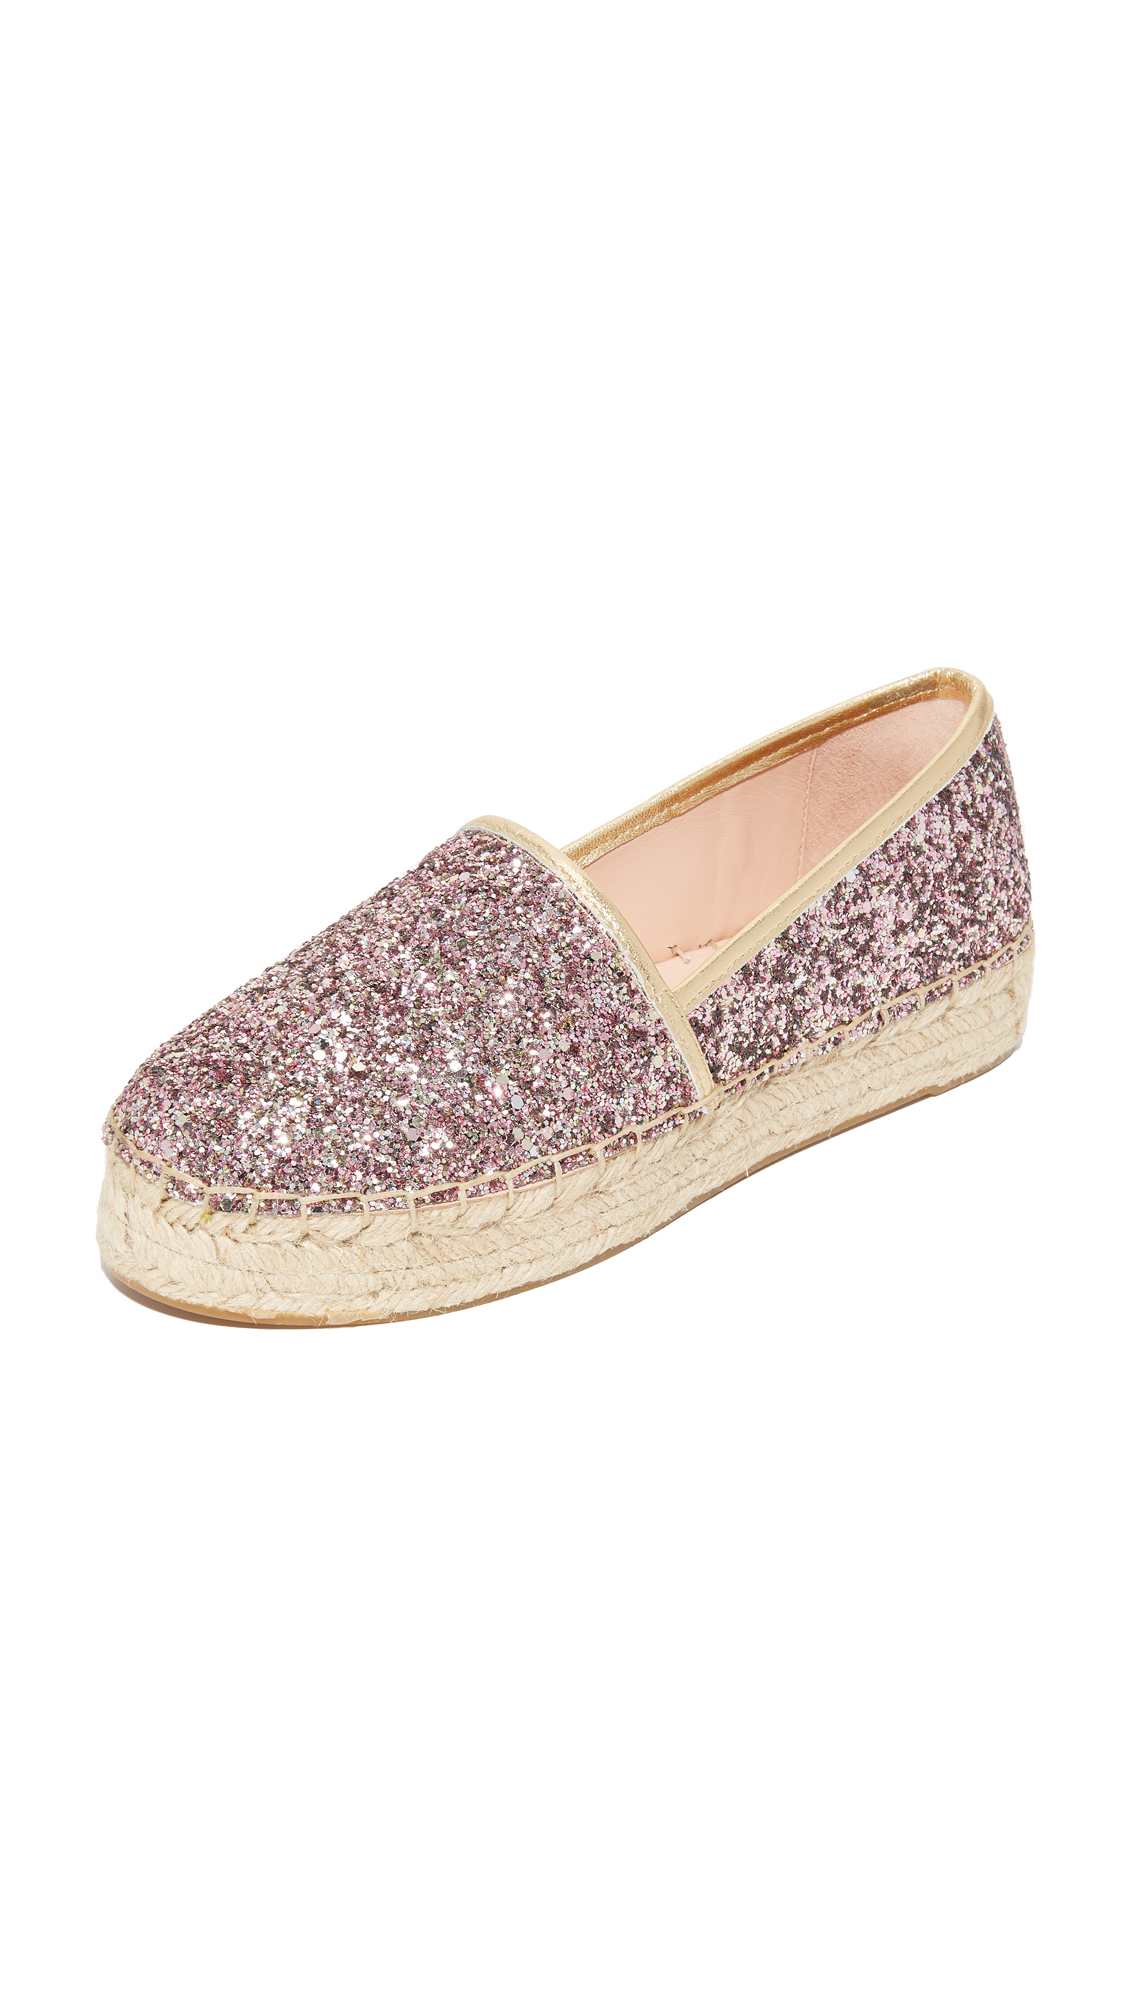 Photo of Kate Spade New York Linds Too Platform Glitter Espadrilles Rose Gold Multi - Kate Spade New York online